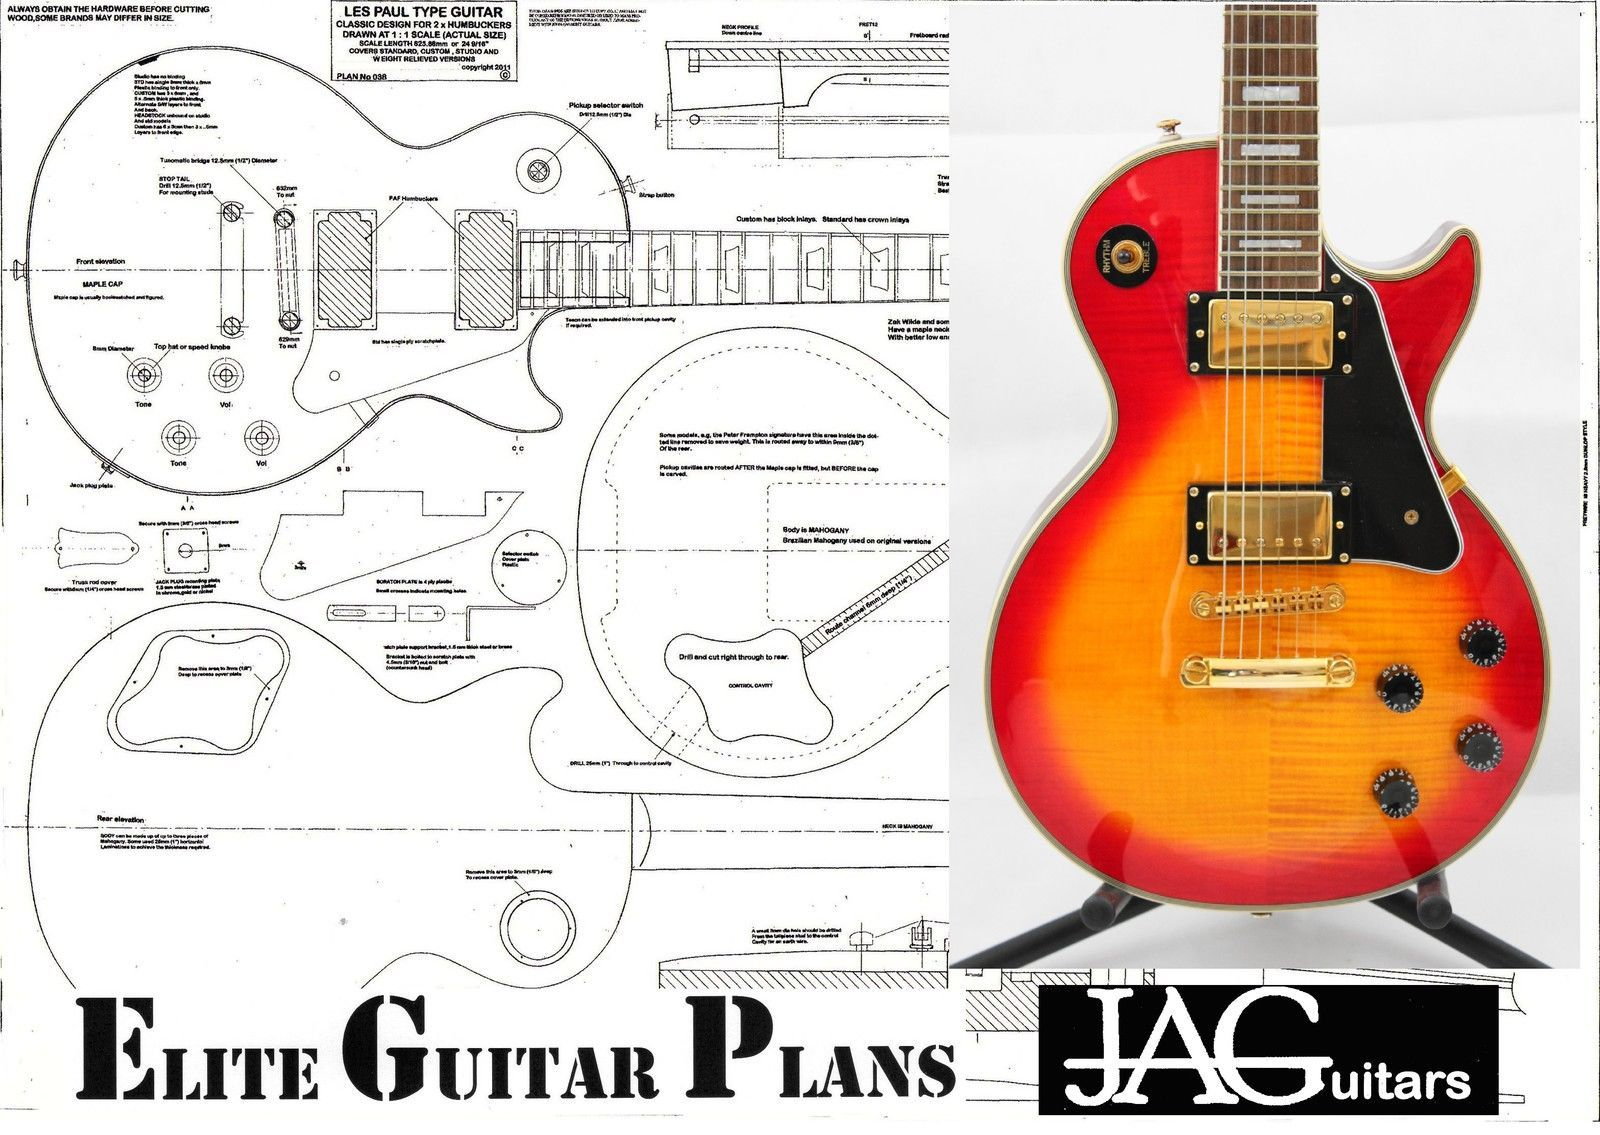 Luthiers Project Plan Drawing For Gibson Les Paul Guitar P038 Epiphone Firebird Studio Wiring Diagram Ideal Gift Ebay Guitarras